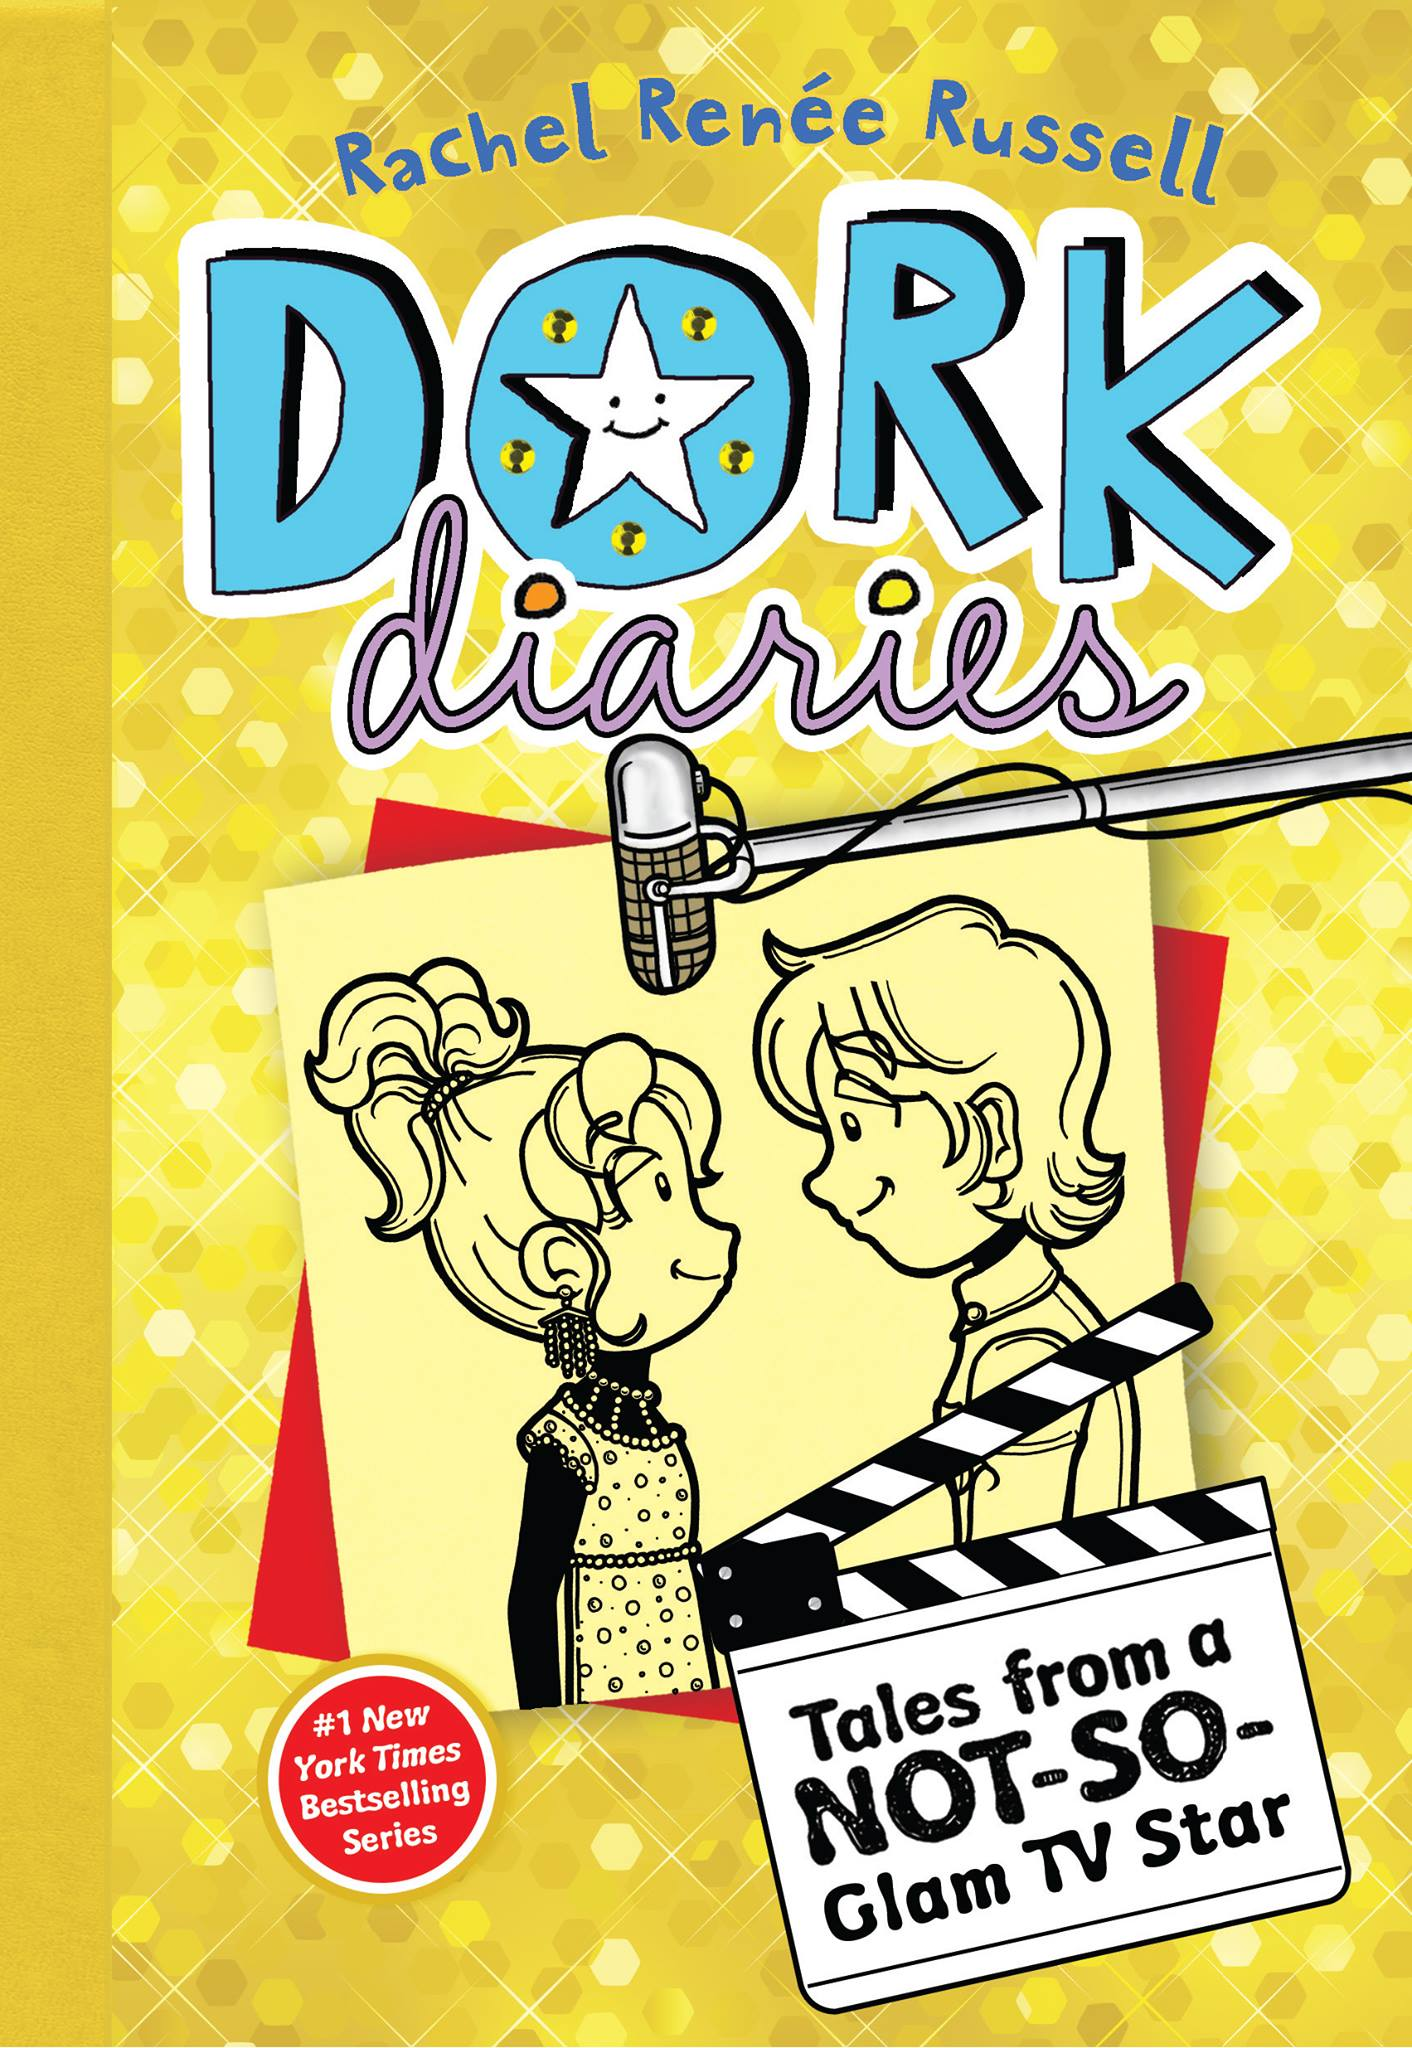 Dork diaries tales from a not so glam tv star the dork diaries wiki